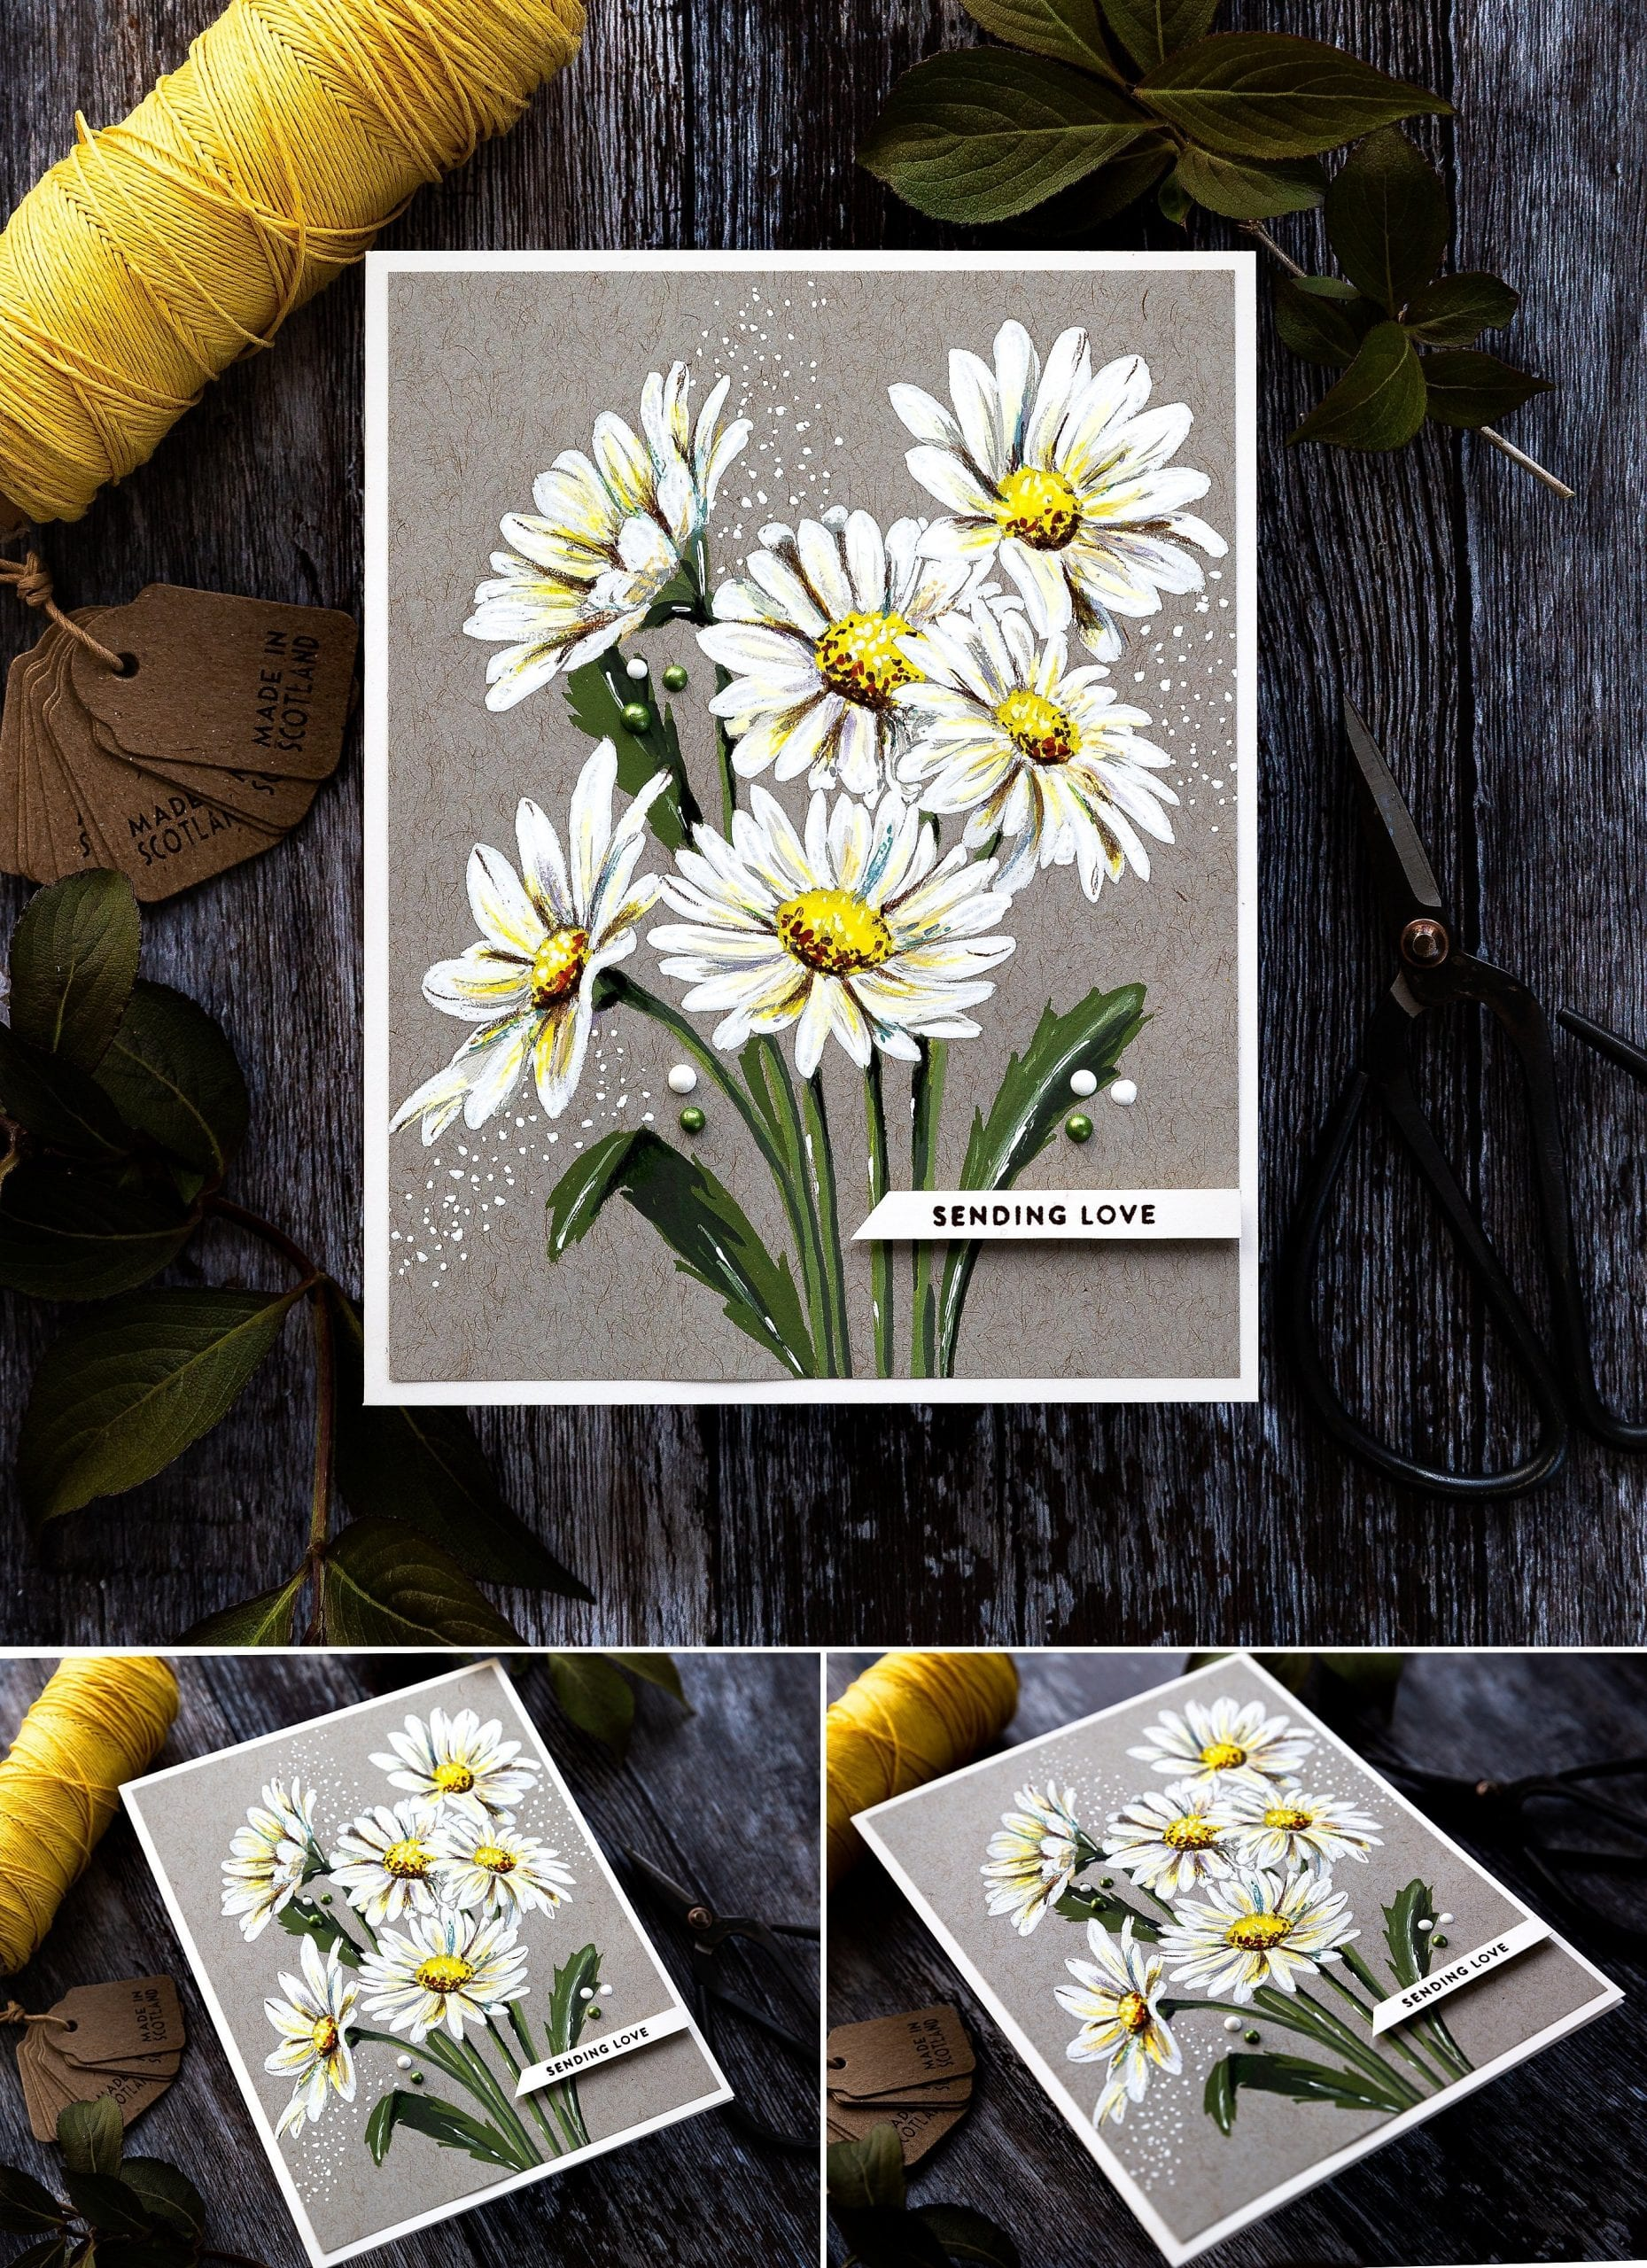 Gouache on kraft daisy bouquet, handmade sending love card by Debby Hughes using supplies from Simon Says Stamp. Find out more here: https://limedoodledesign.com/2019/06/gouache-on-kraft-daisies/